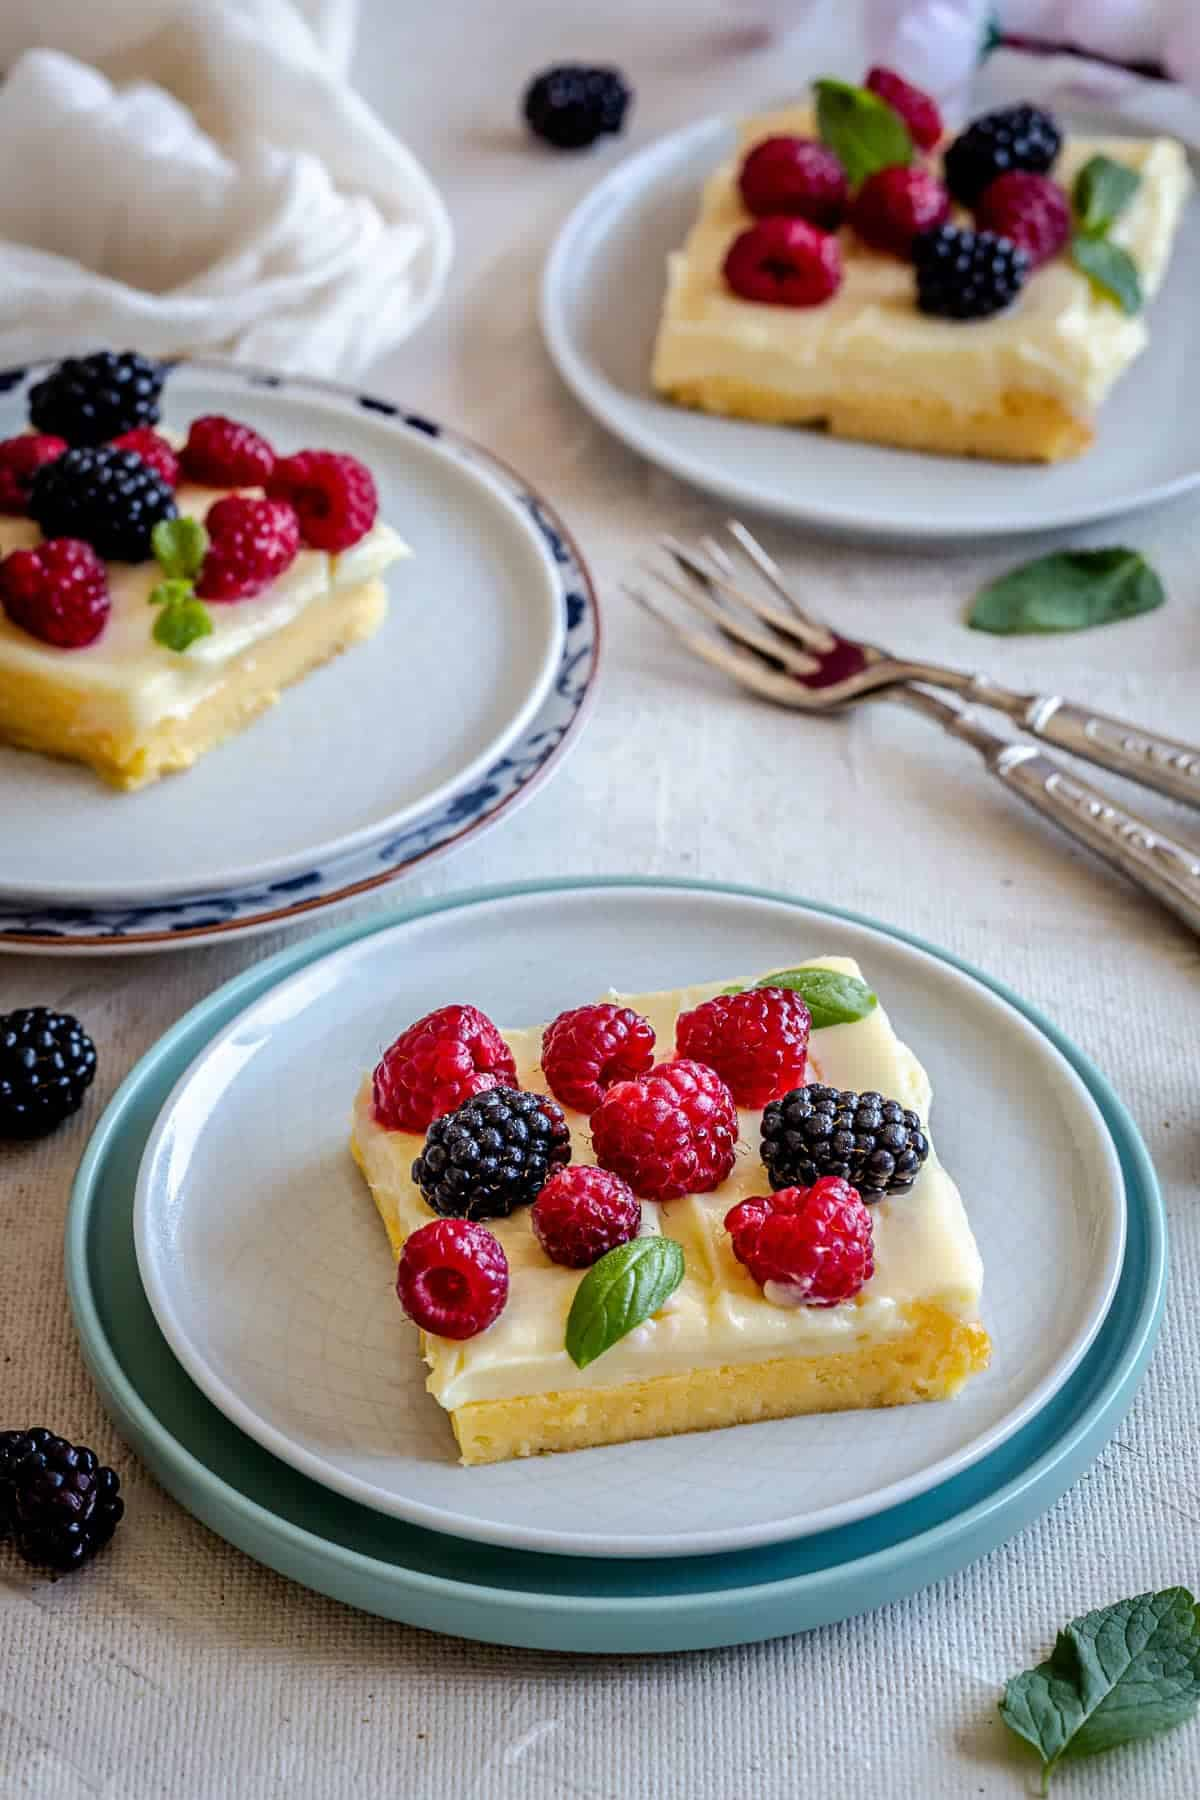 yellow bars with frosting and berries on top served in plates